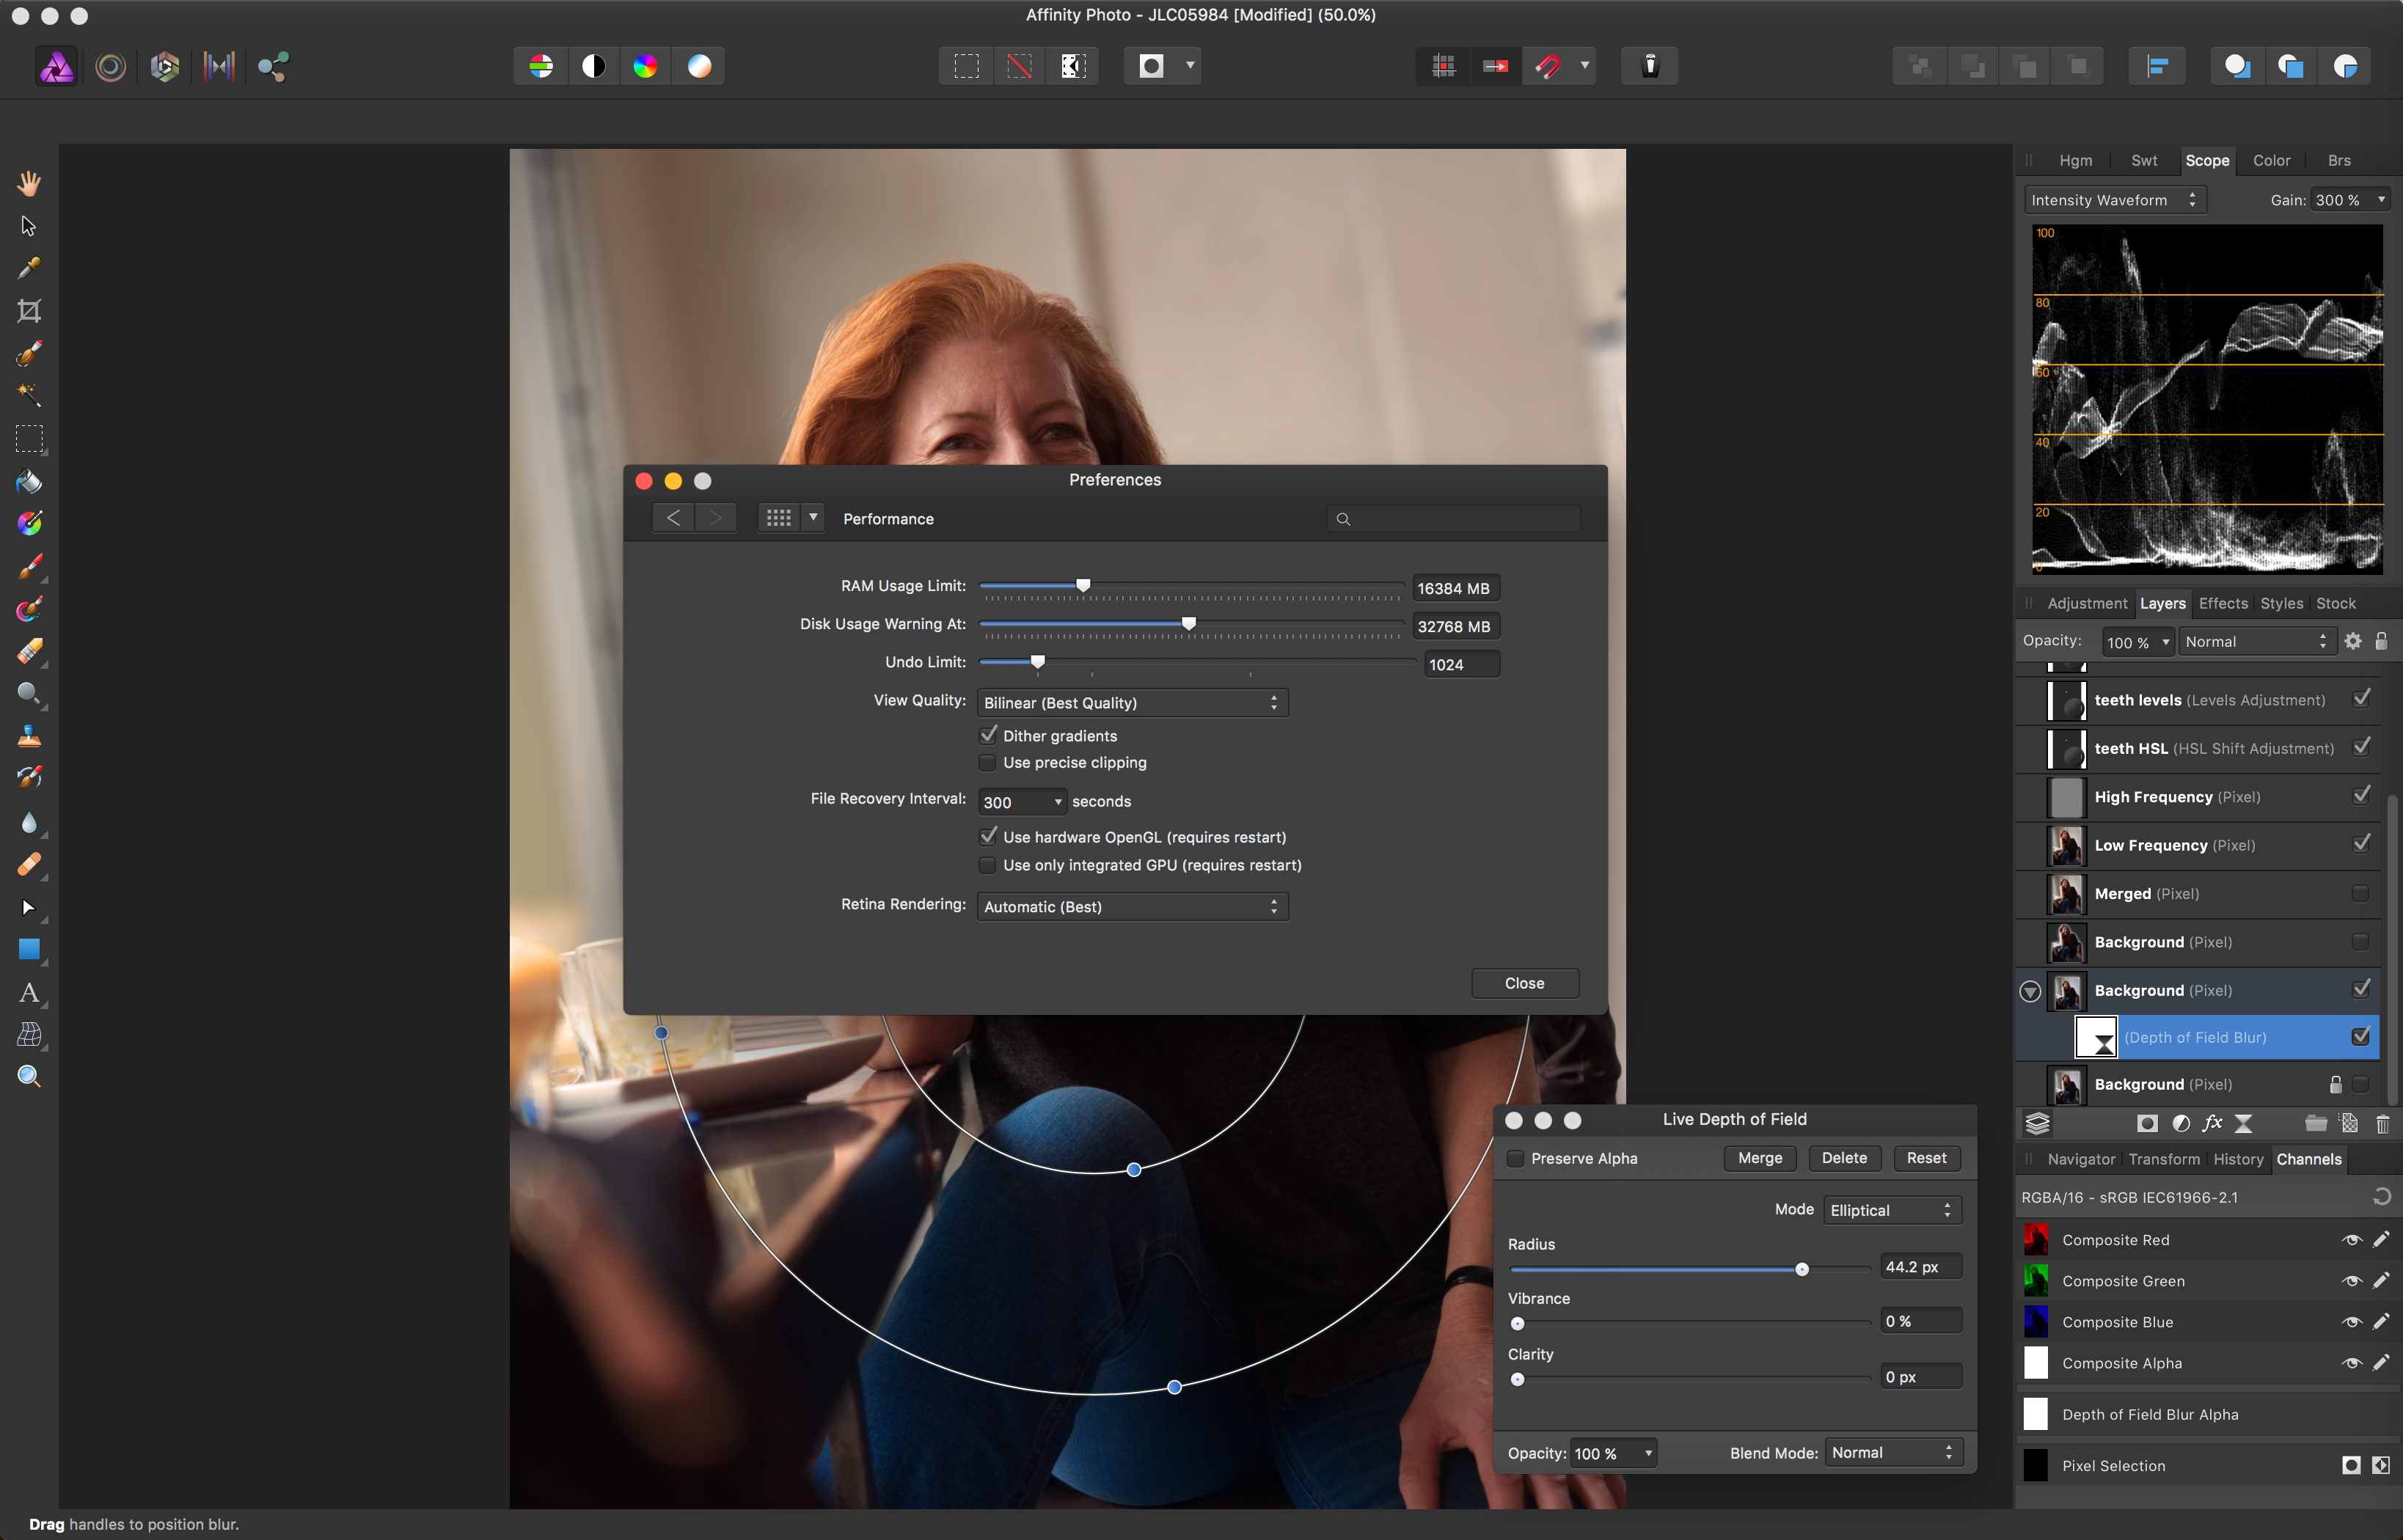 Review: Affinity Photo 1 5 2 for desktop: Digital